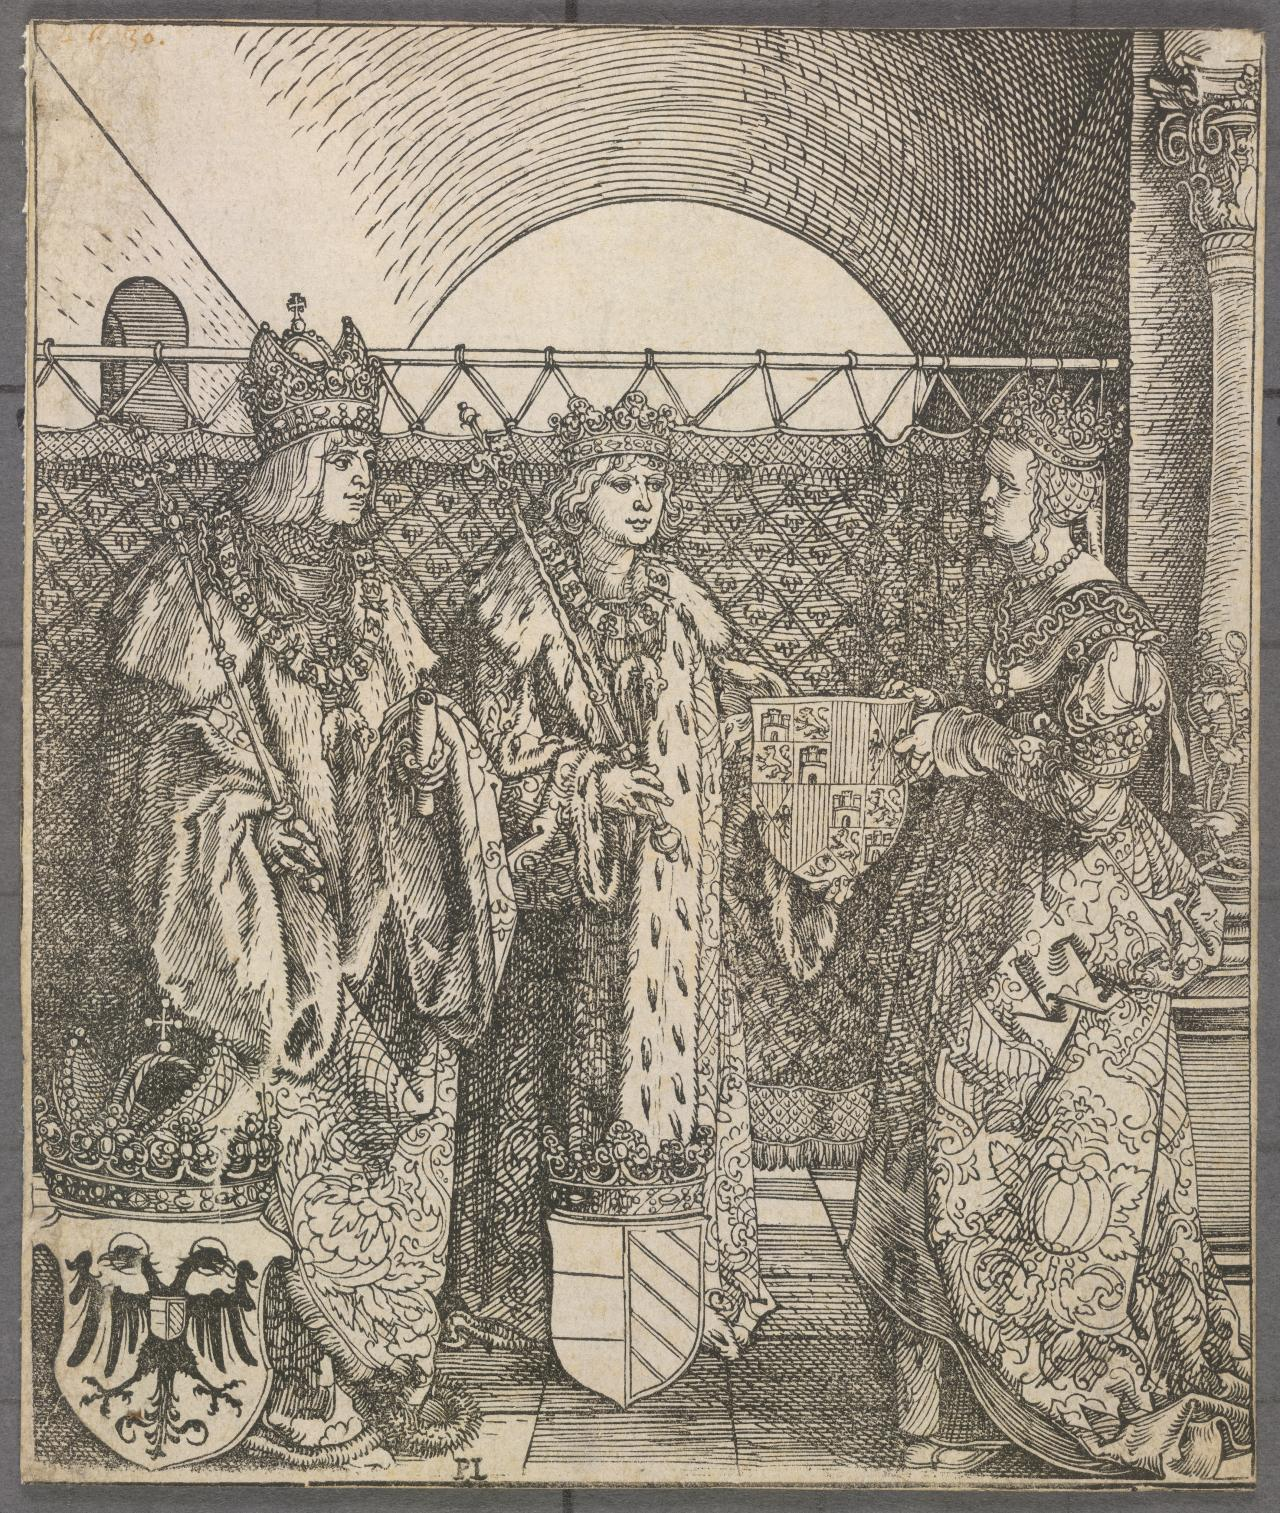 The Engagement of Philip the Handsome with Joanna of Castile